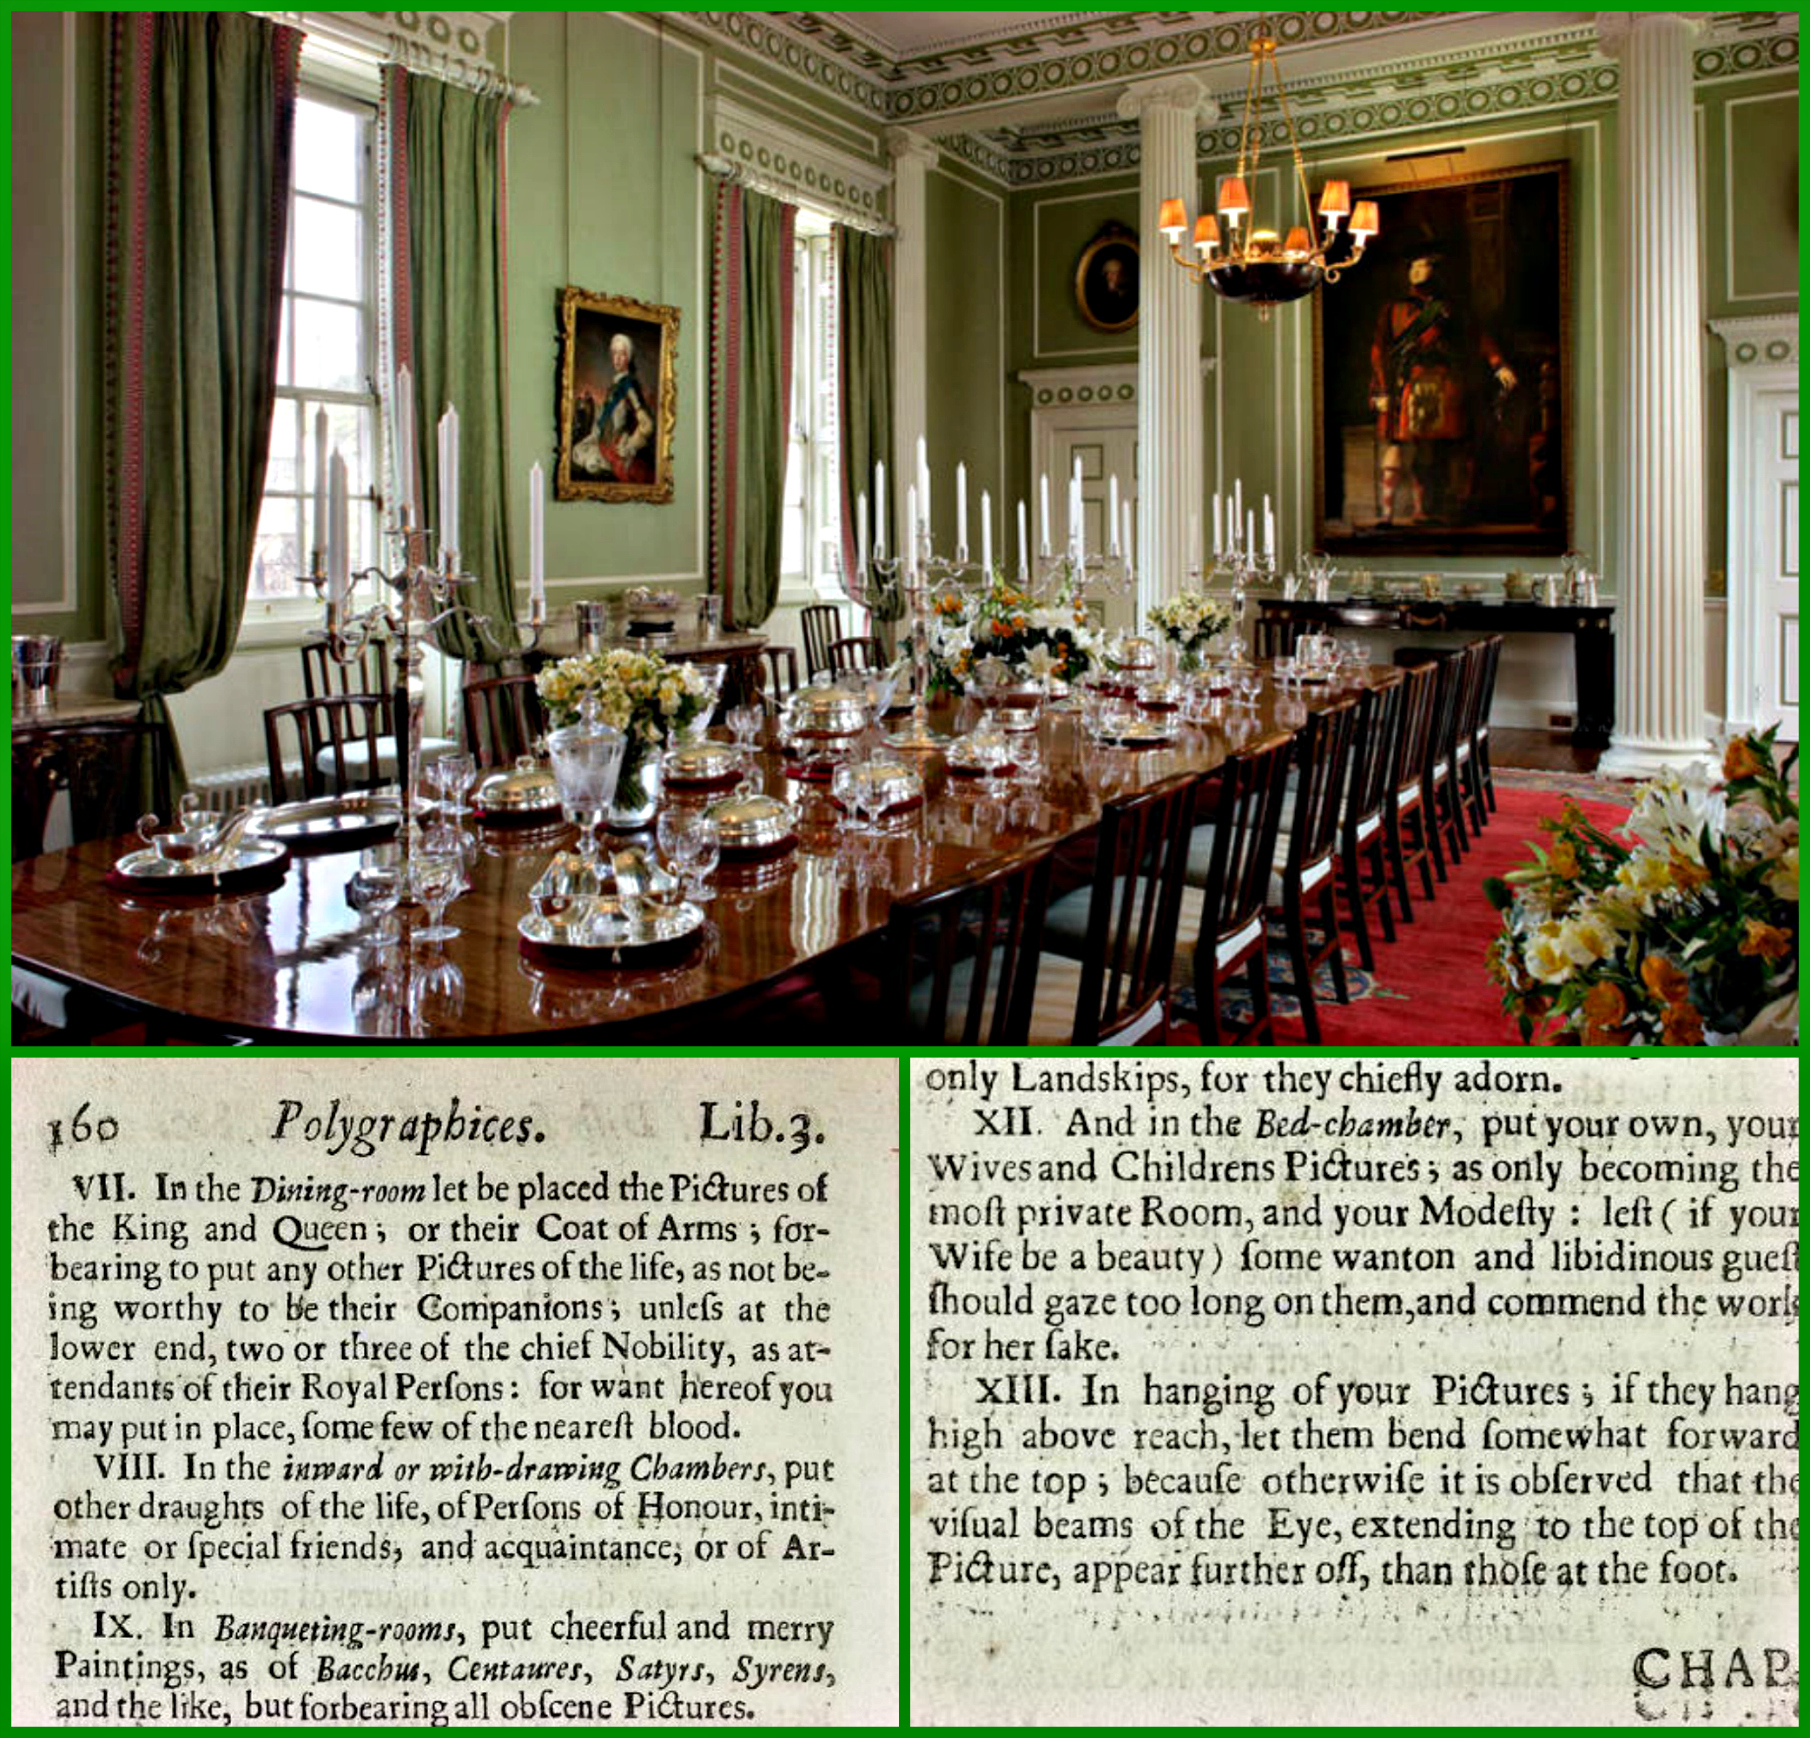 The Dining Room At The Royal Palace Of Holyroodhouse In Edinburgh, Over  Which King George IV Reigns.